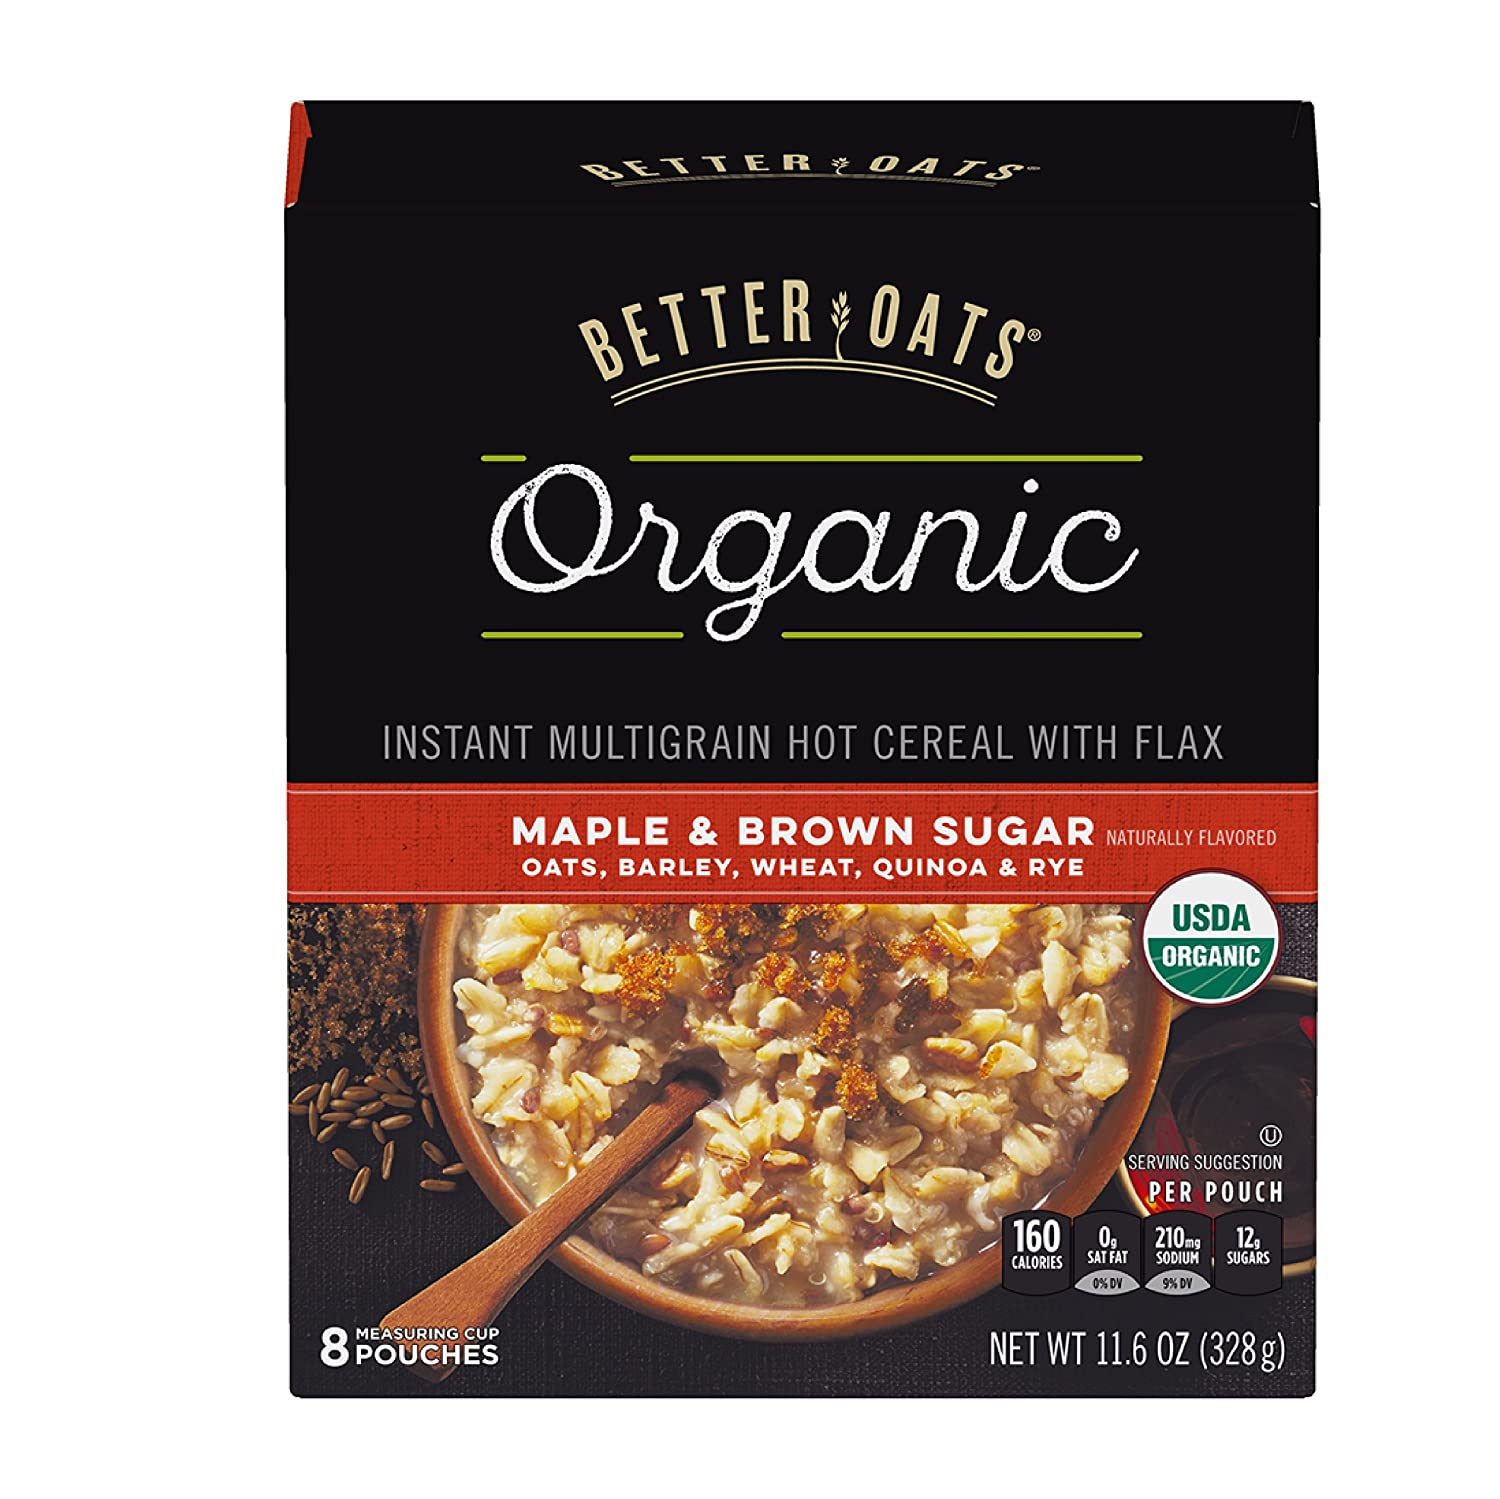 Post Better Oats Organic Instant Oatmeal with Flax Seeds and Quinoa, Maple and Brown Sugar Flavor, 11.6 Ounce